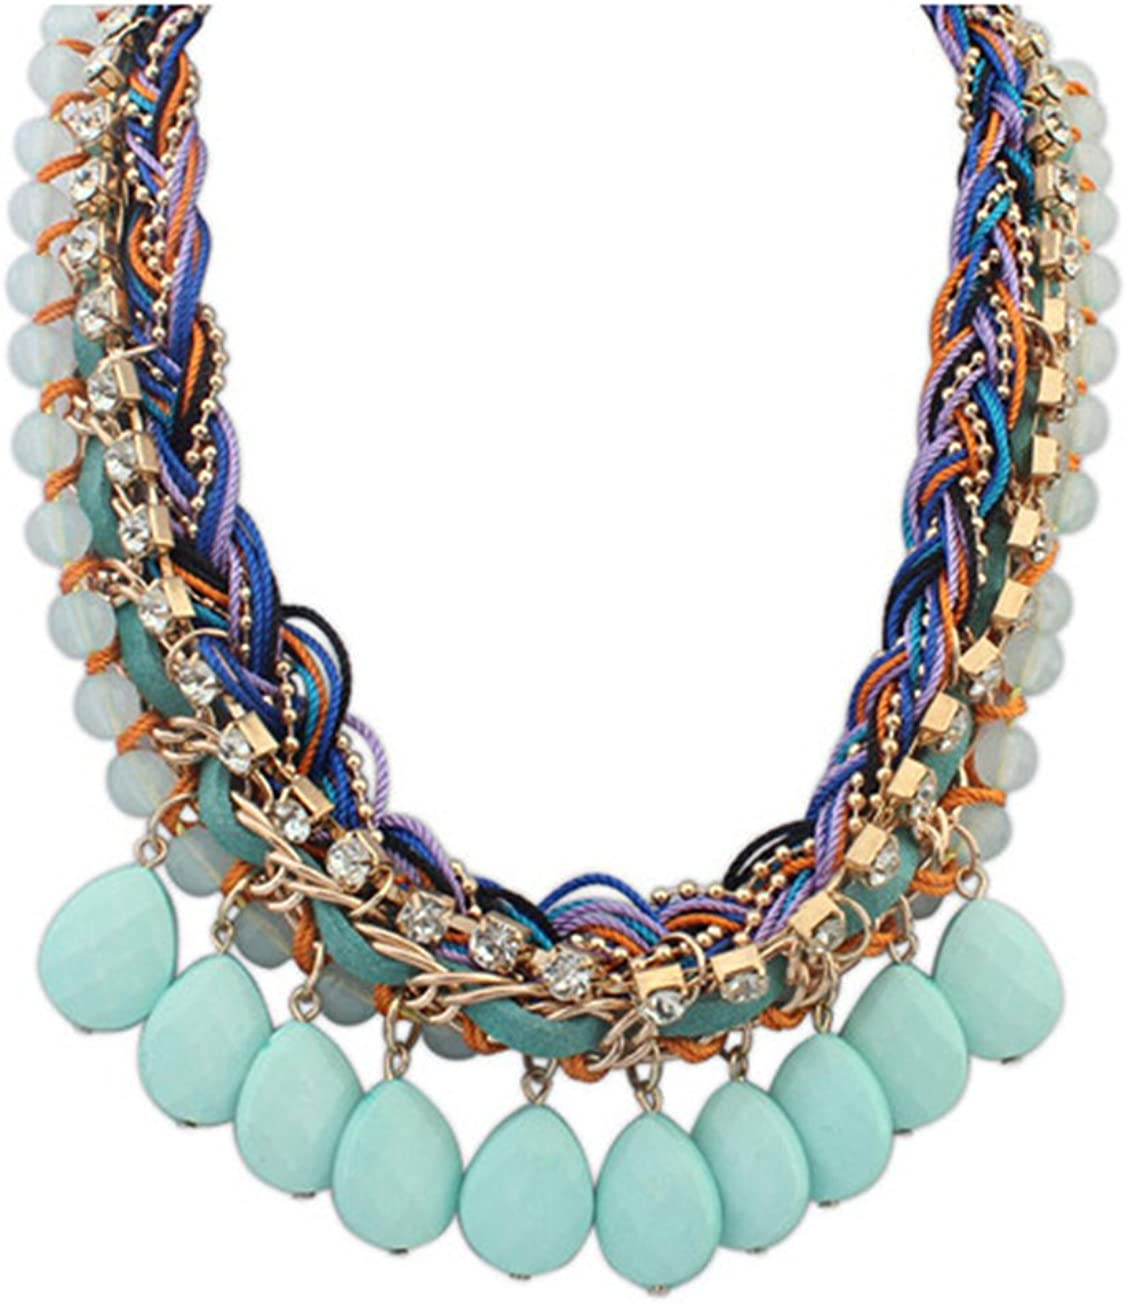 Gift for her Women/'s jewelry Necklace for women Chunky necklace Statement necklace Green rope necklace Textile jewellery